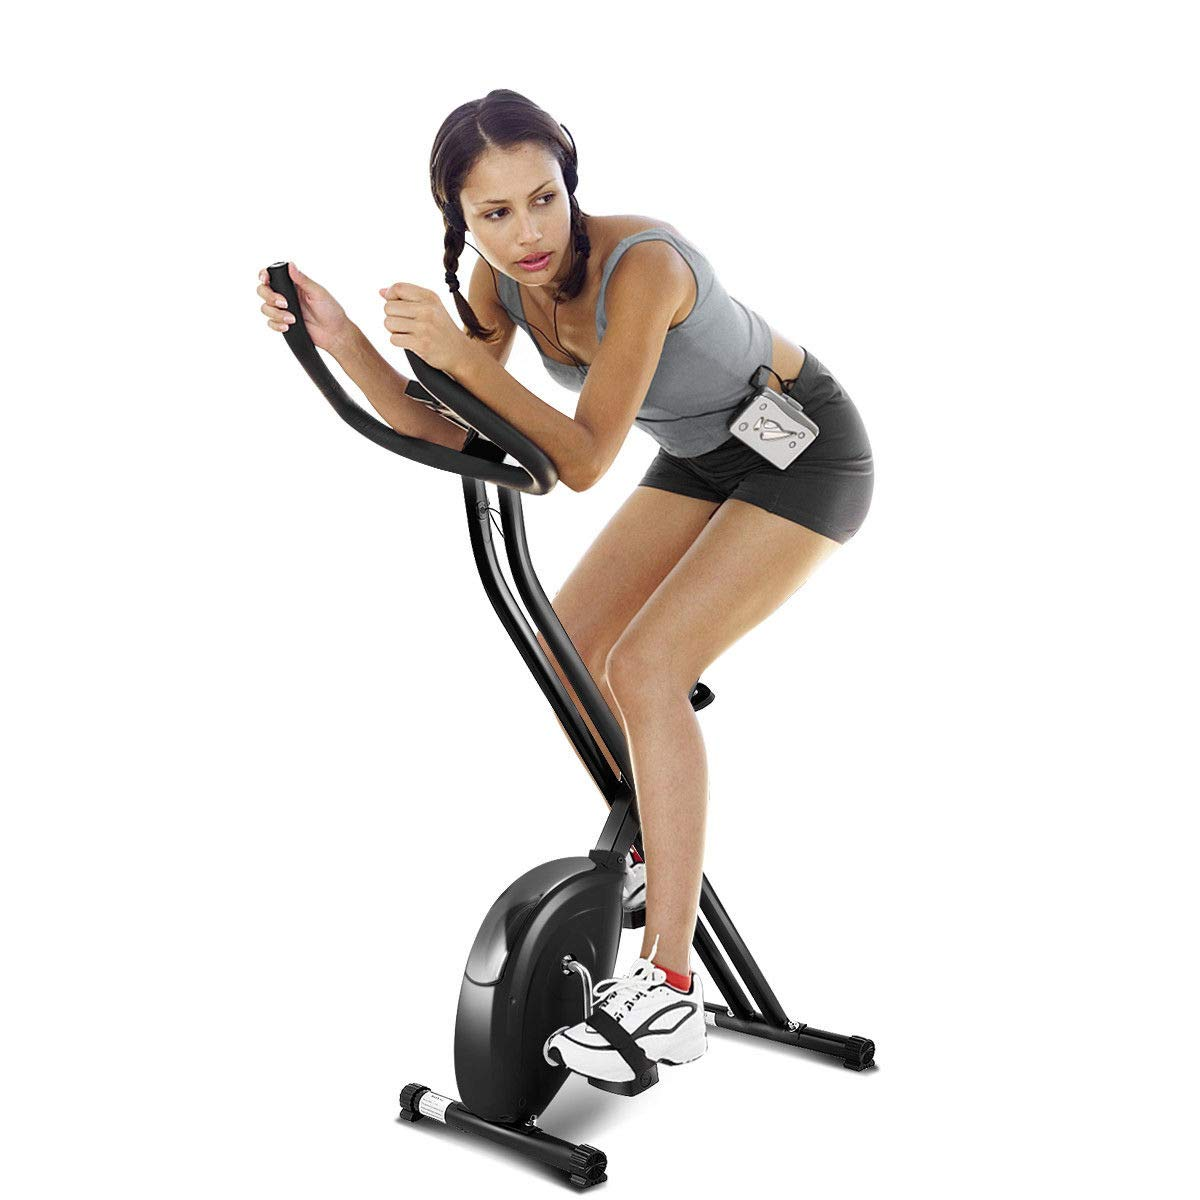 Goplus Folding Exercise Bike Cardio Workout Upright Cycling Magnetic Fitness Stationary Black